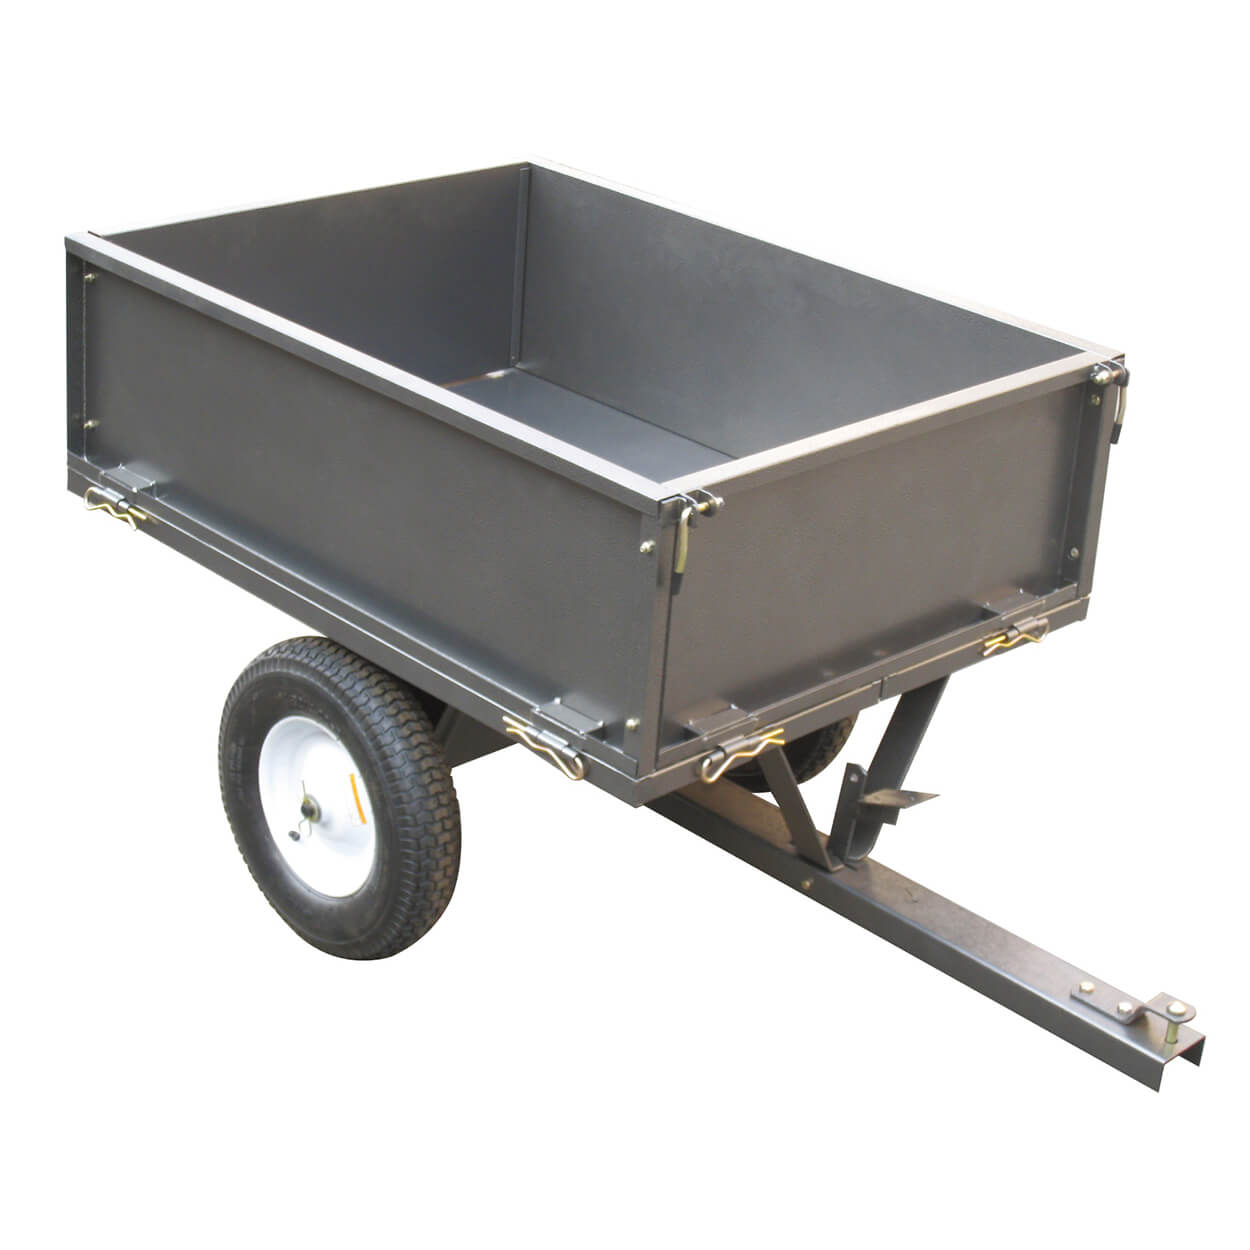 The Handy 227kg (500lb) Towed Trailer